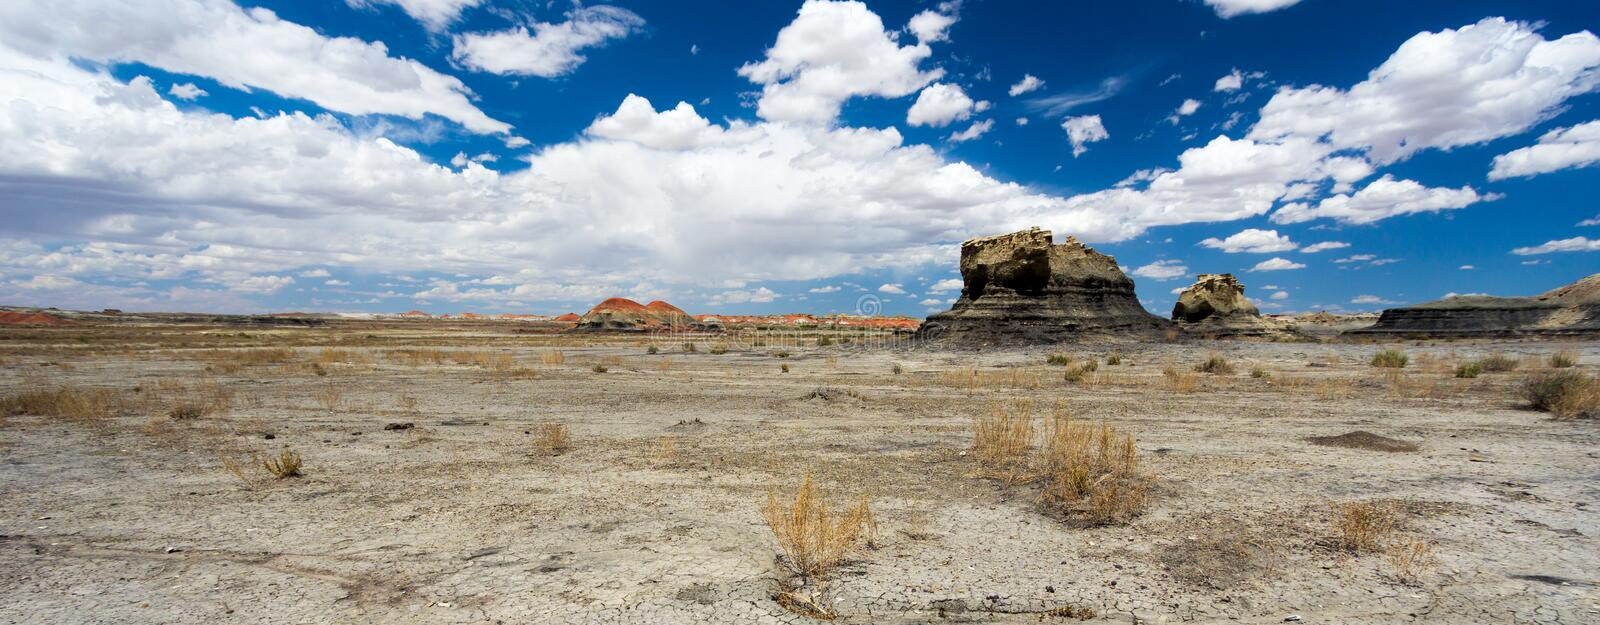 Panorama rock desert landscape in northern New Mexico royalty free stock photography